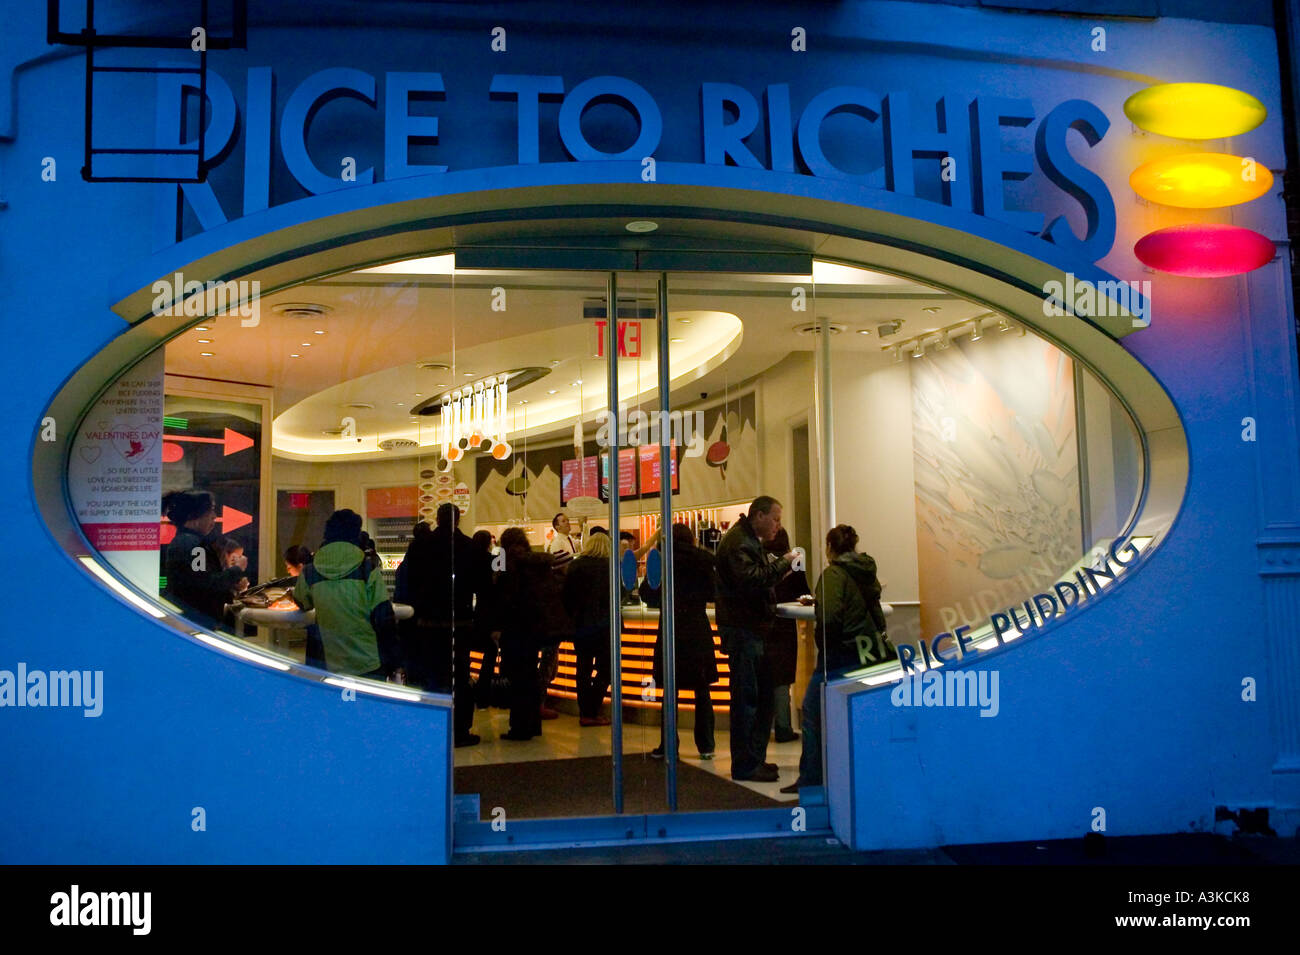 View of the rice pudding only restaurant Rice to Riches on Spring street in the NoLIta neighbourhood of New York City NY USA Jan - Stock Image